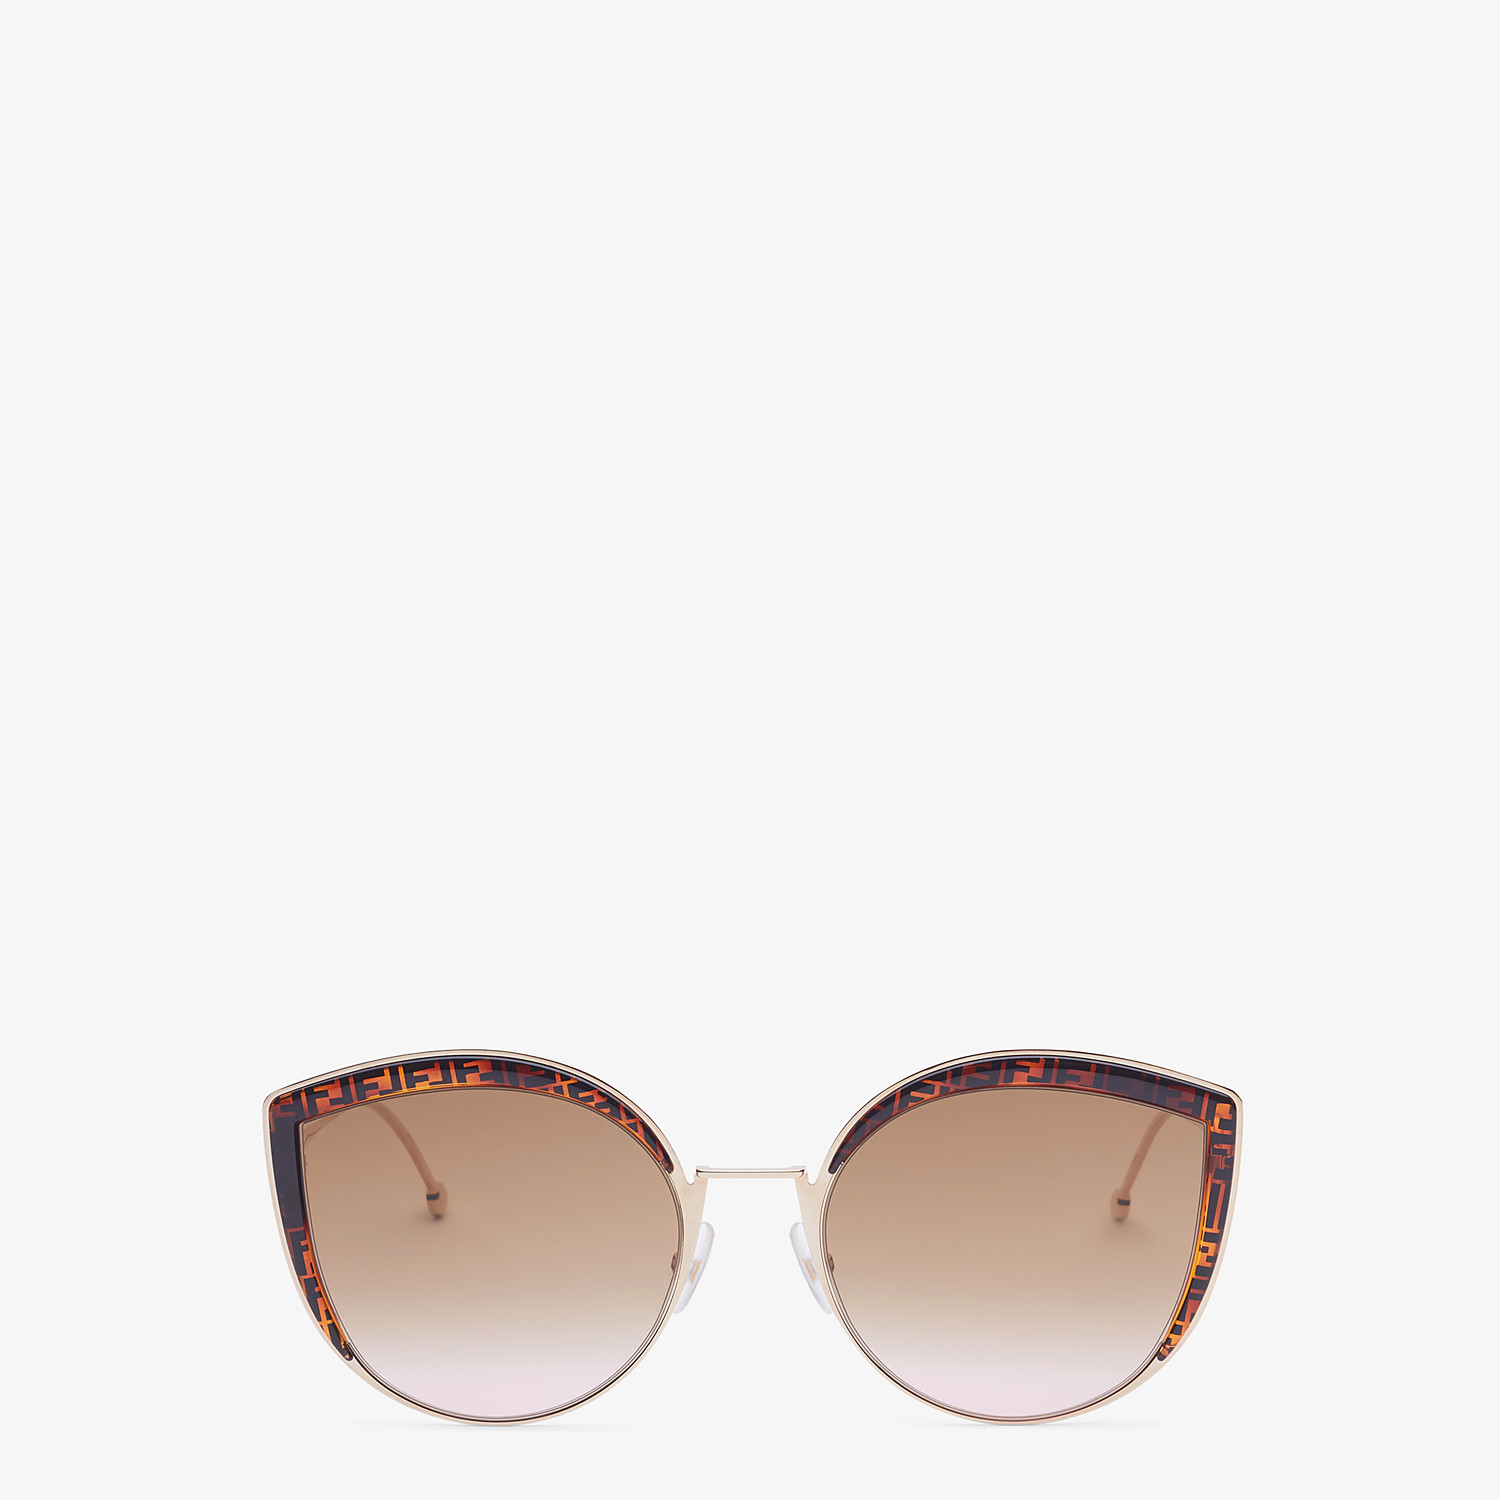 FENDI F IS FENDI - Rose-gold-colored sunglasses - view 1 detail